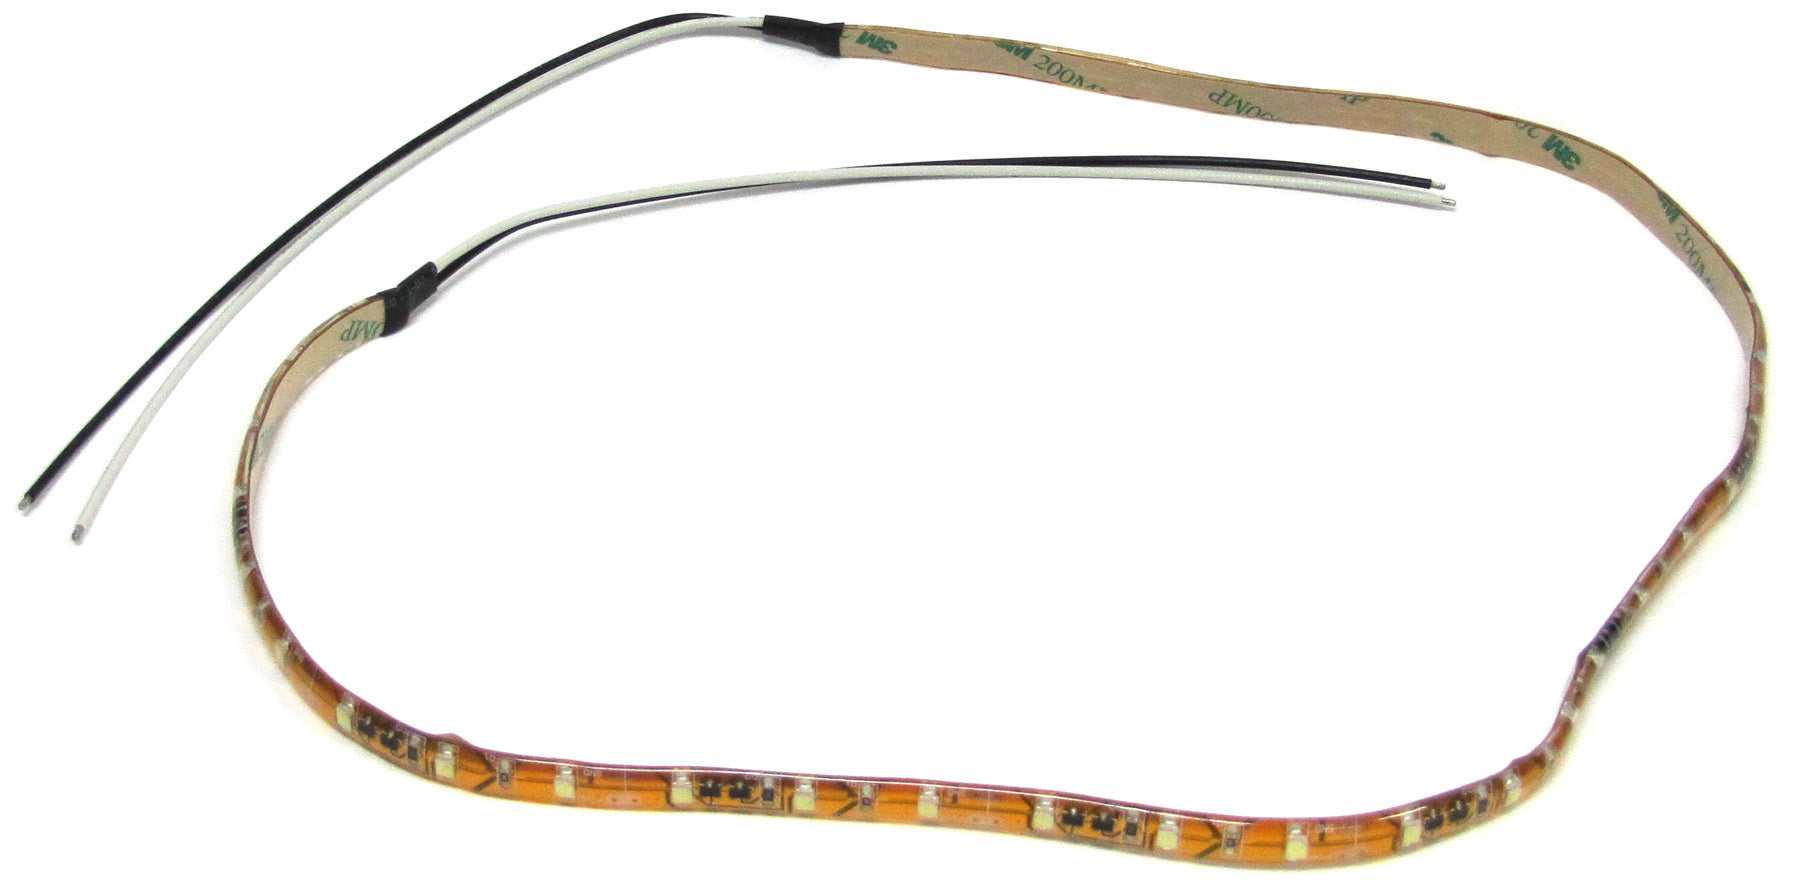 "LED WHT STRIP LGT 24"" LD WIRES BOTH ENDS"